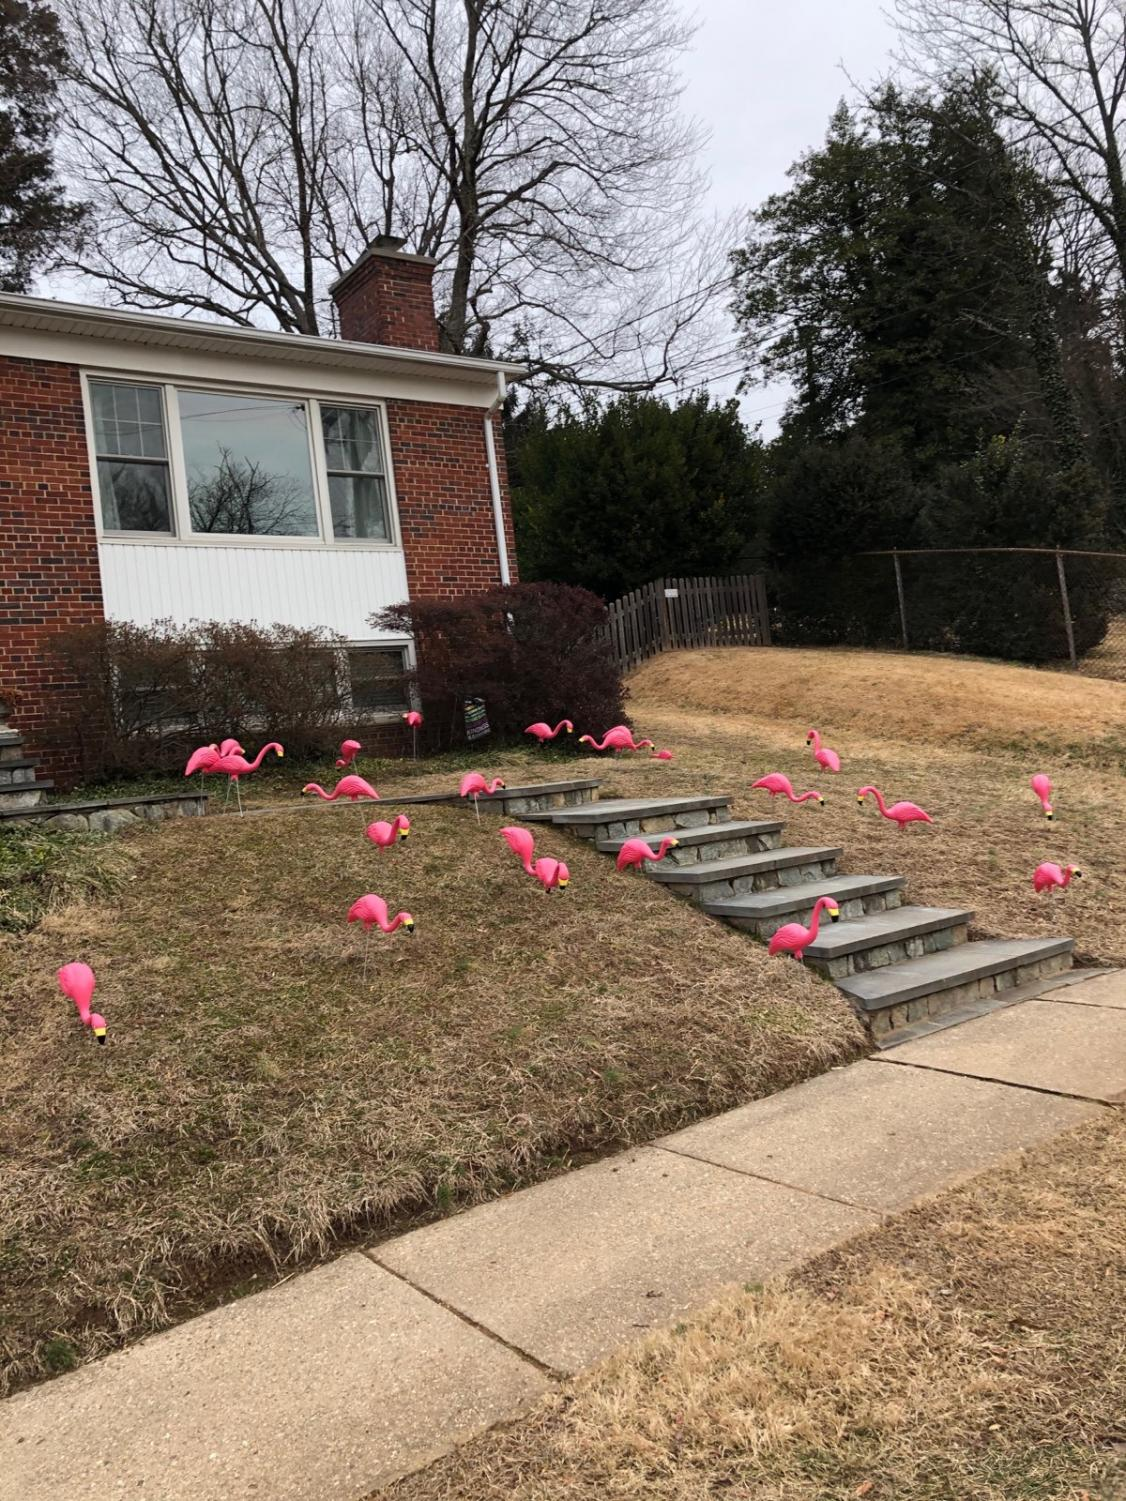 """A recently """"flocked"""" lawn. Flocking raised $1,880 dollars for Pennies 4 Patients this February."""